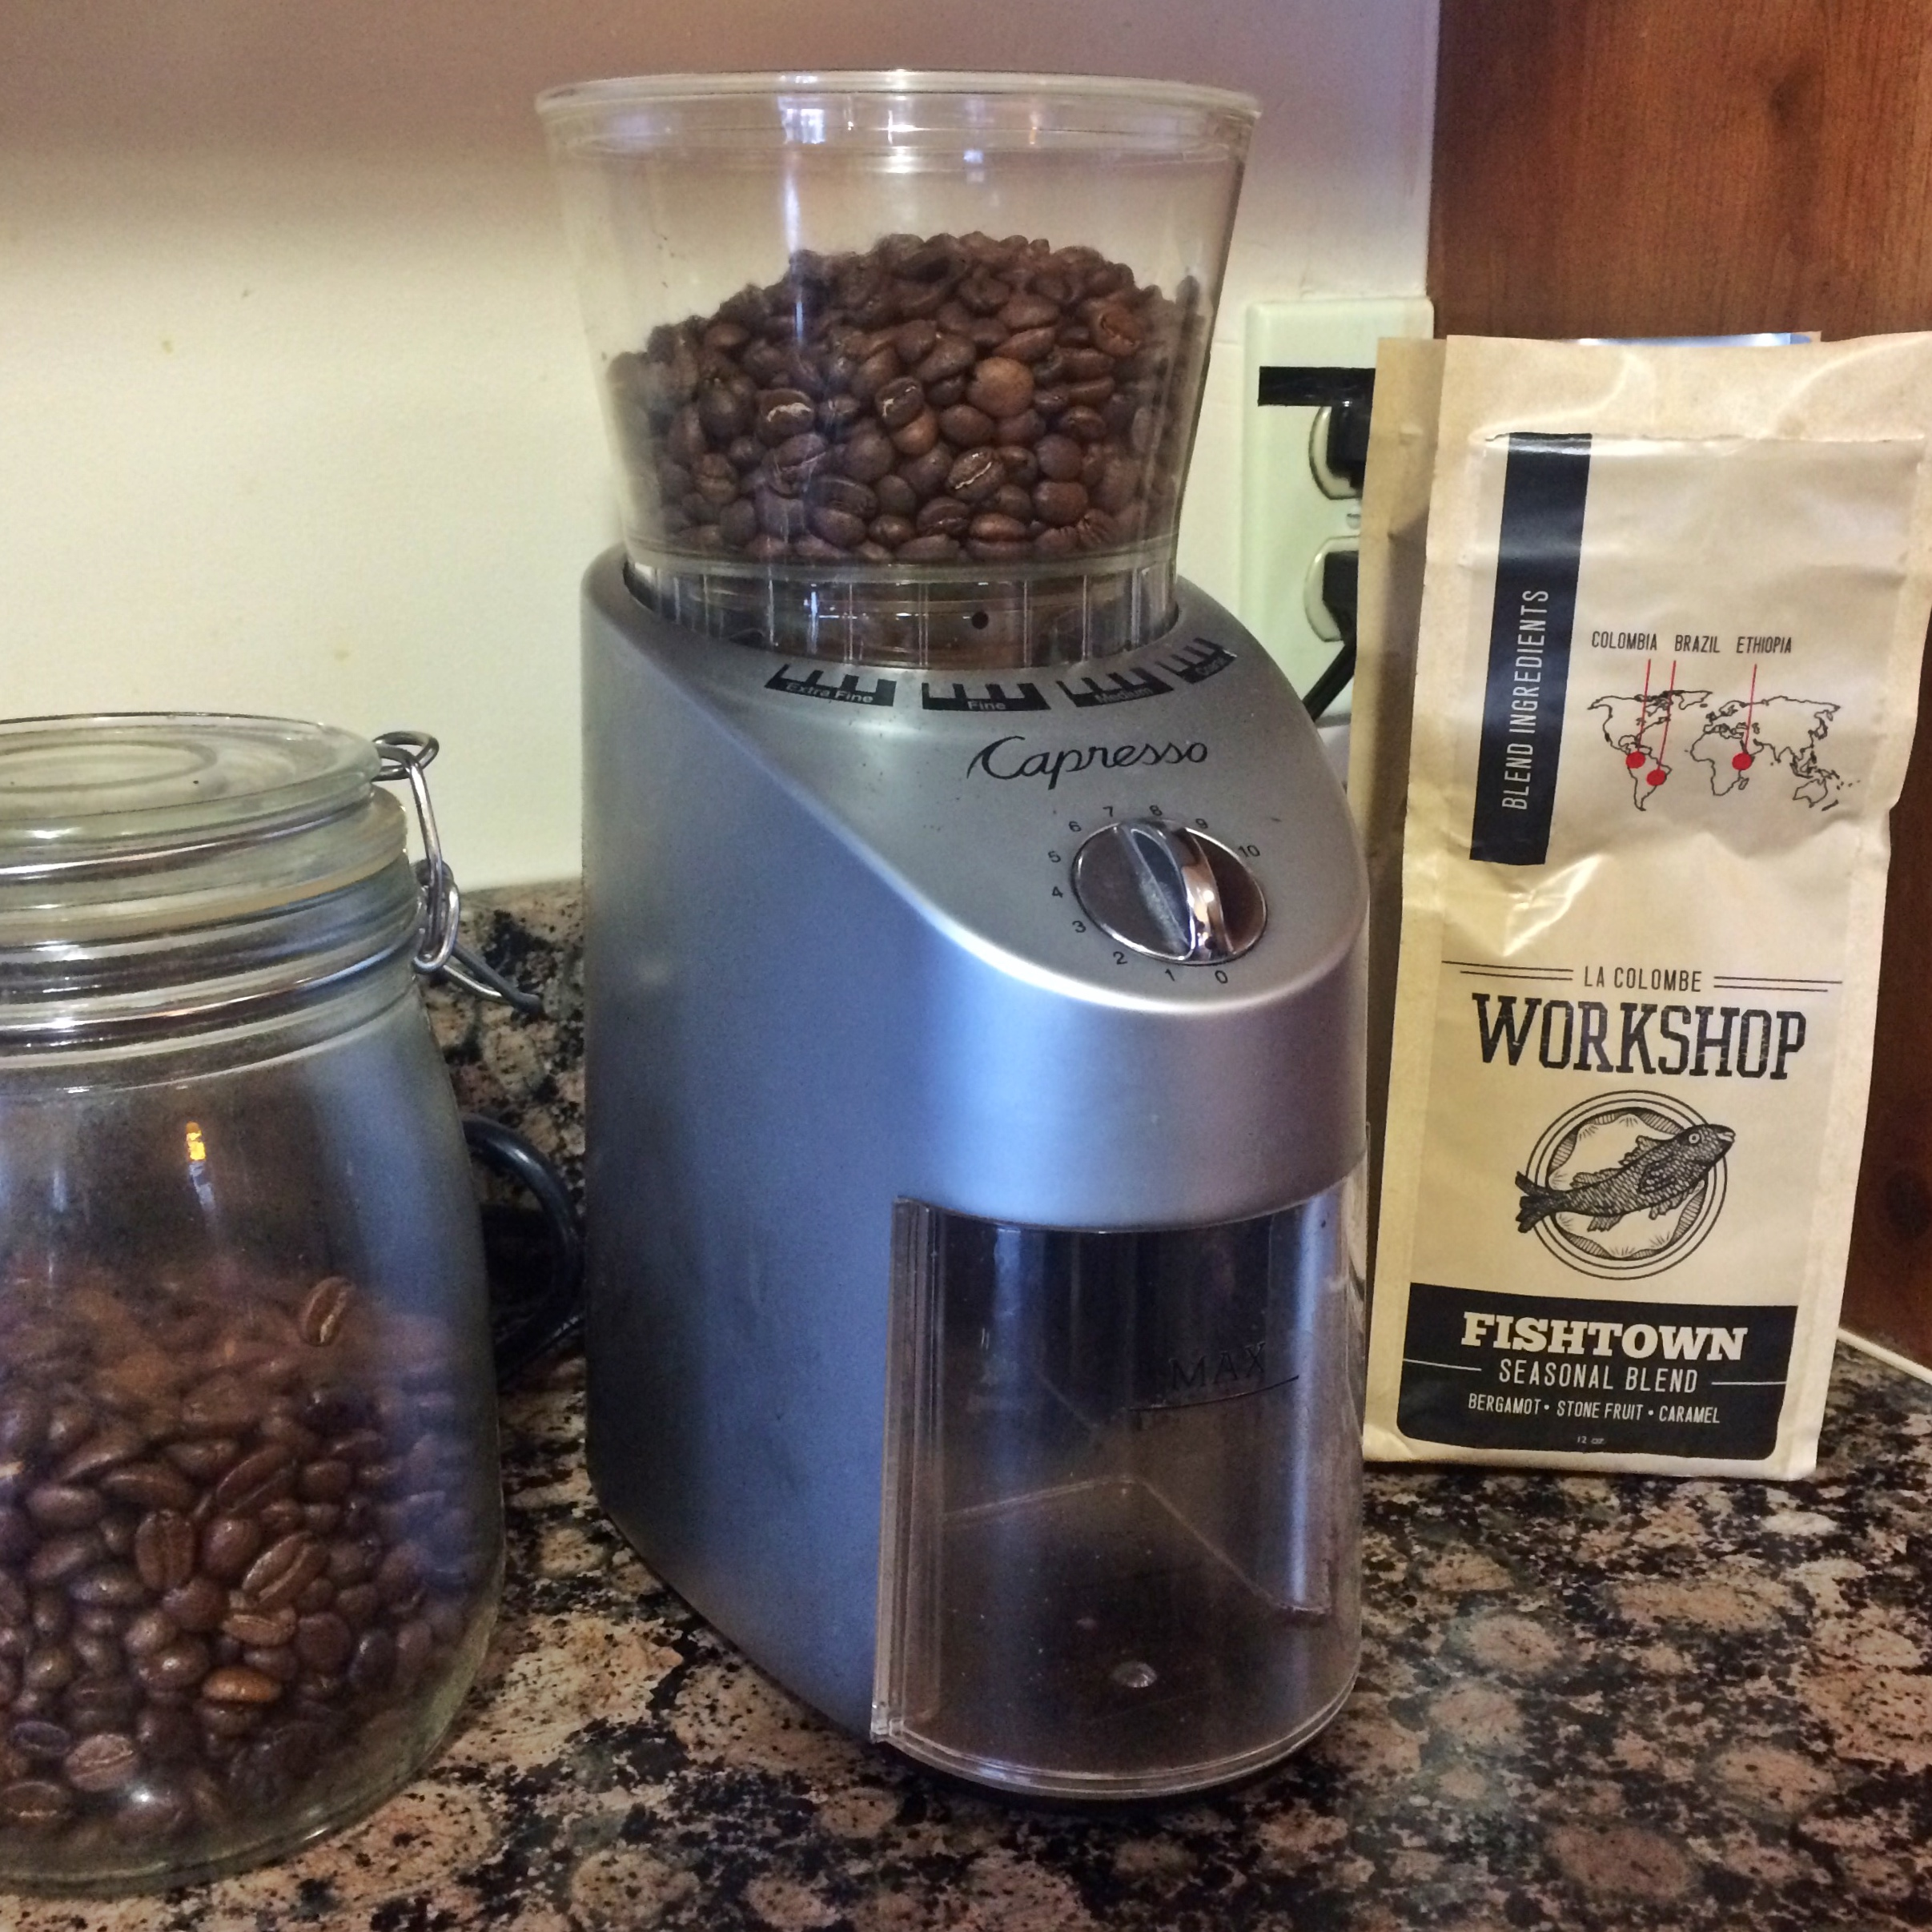 single grinder manual user capressoinfinityconicalburrgrinderownersmanual infinity s guide pages page conical owner burr capresso